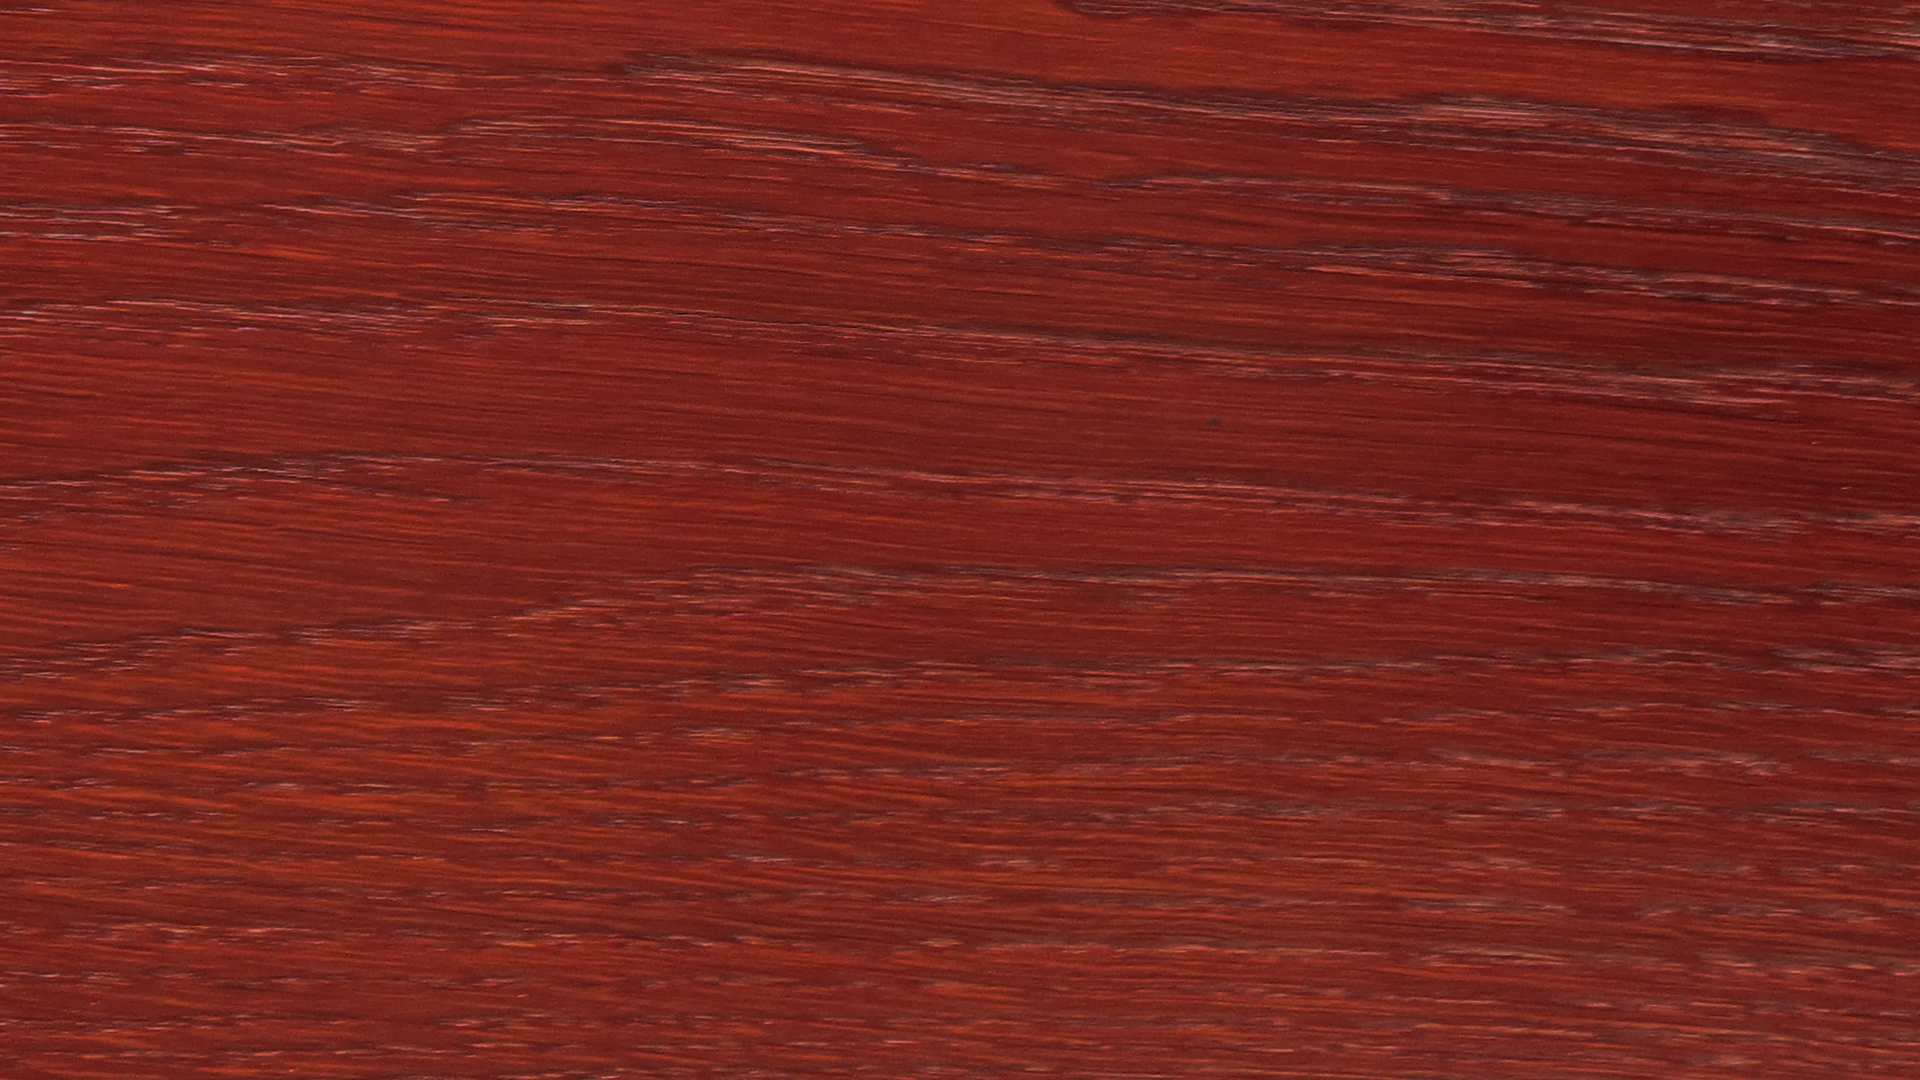 colorwood 24_57b7368e3d82b